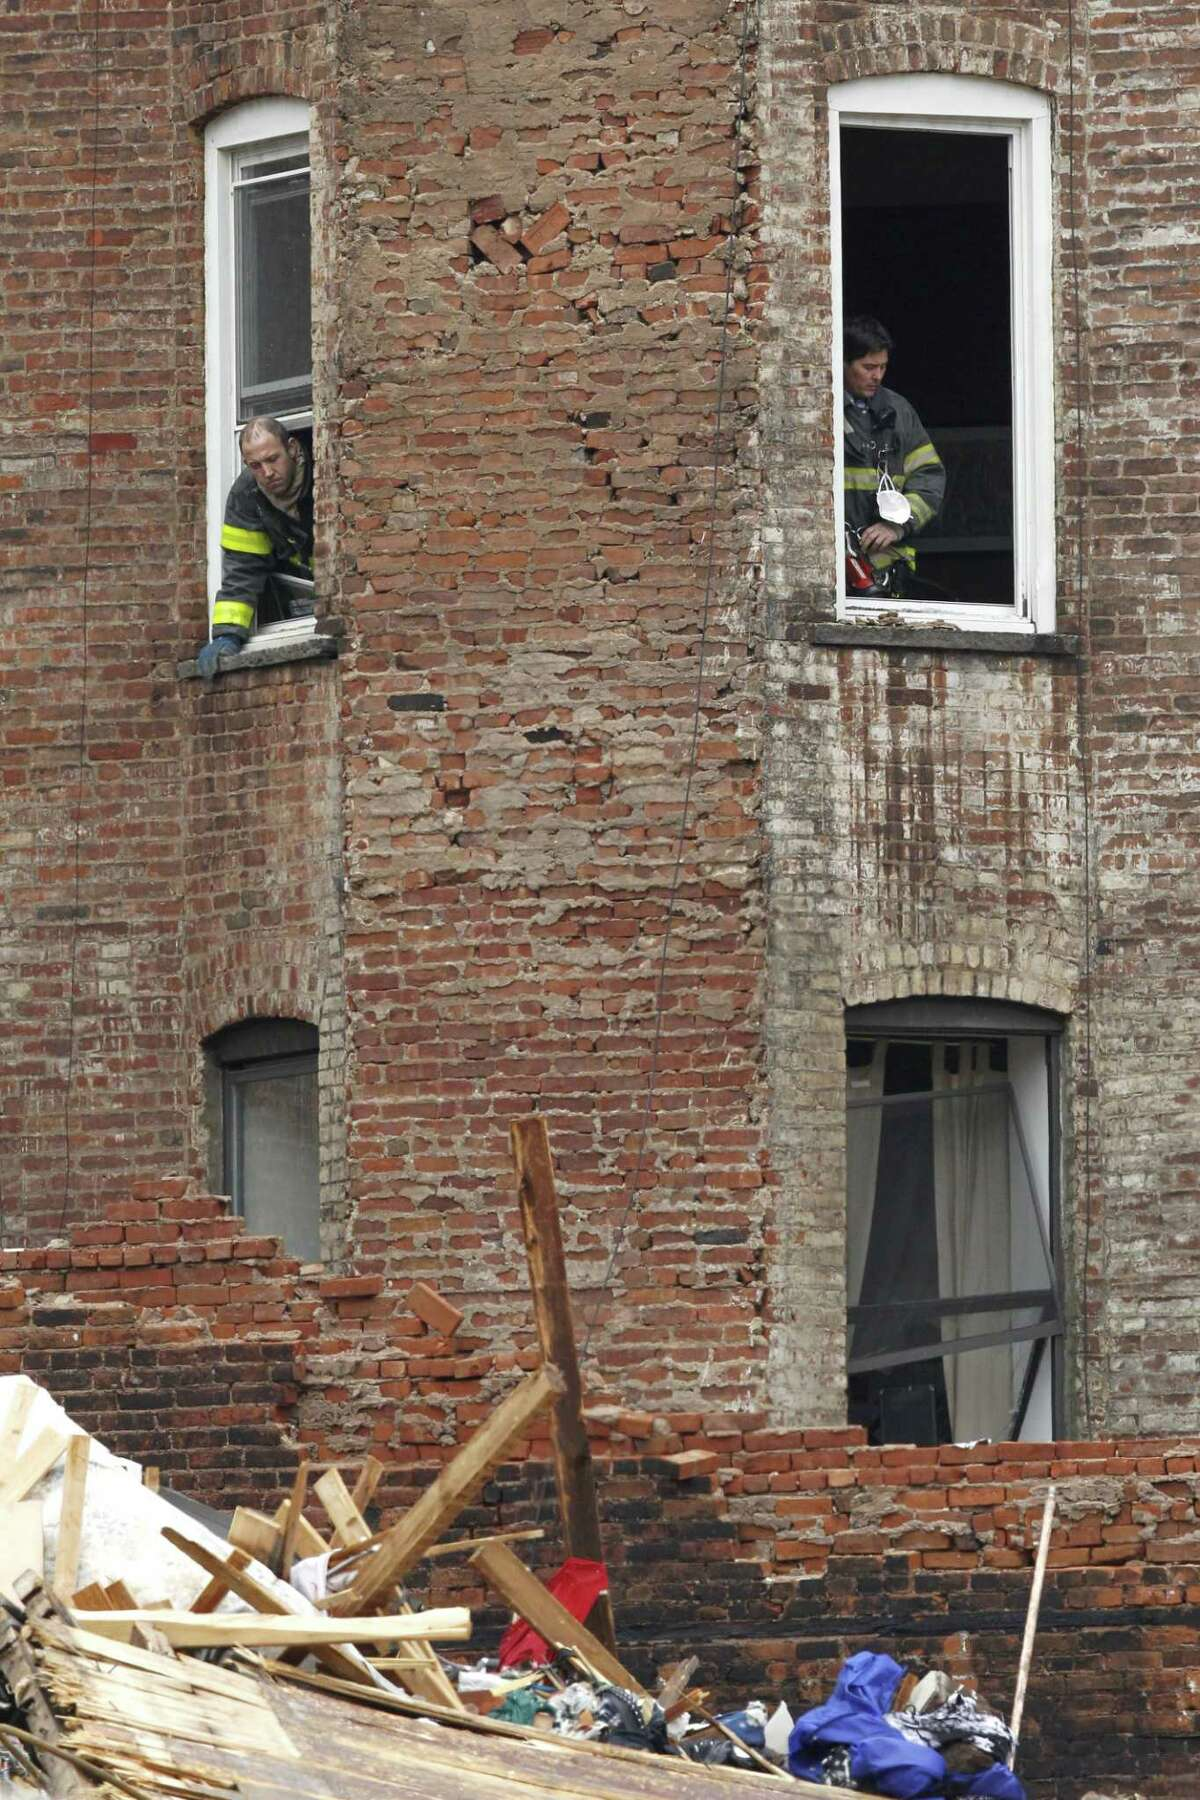 Fire officials stand at the windows of a building adjacent to the site of a building collapse in the East Village neighborhood of New York, Friday, March 27, 2015. Nineteen people were injured, four critically, after the powerful blast and fire sent flames soaring and debris flying Thursday afternoon. Preliminary evidence suggested that a gas explosion amid plumbing and gas work inside the building was to blame.